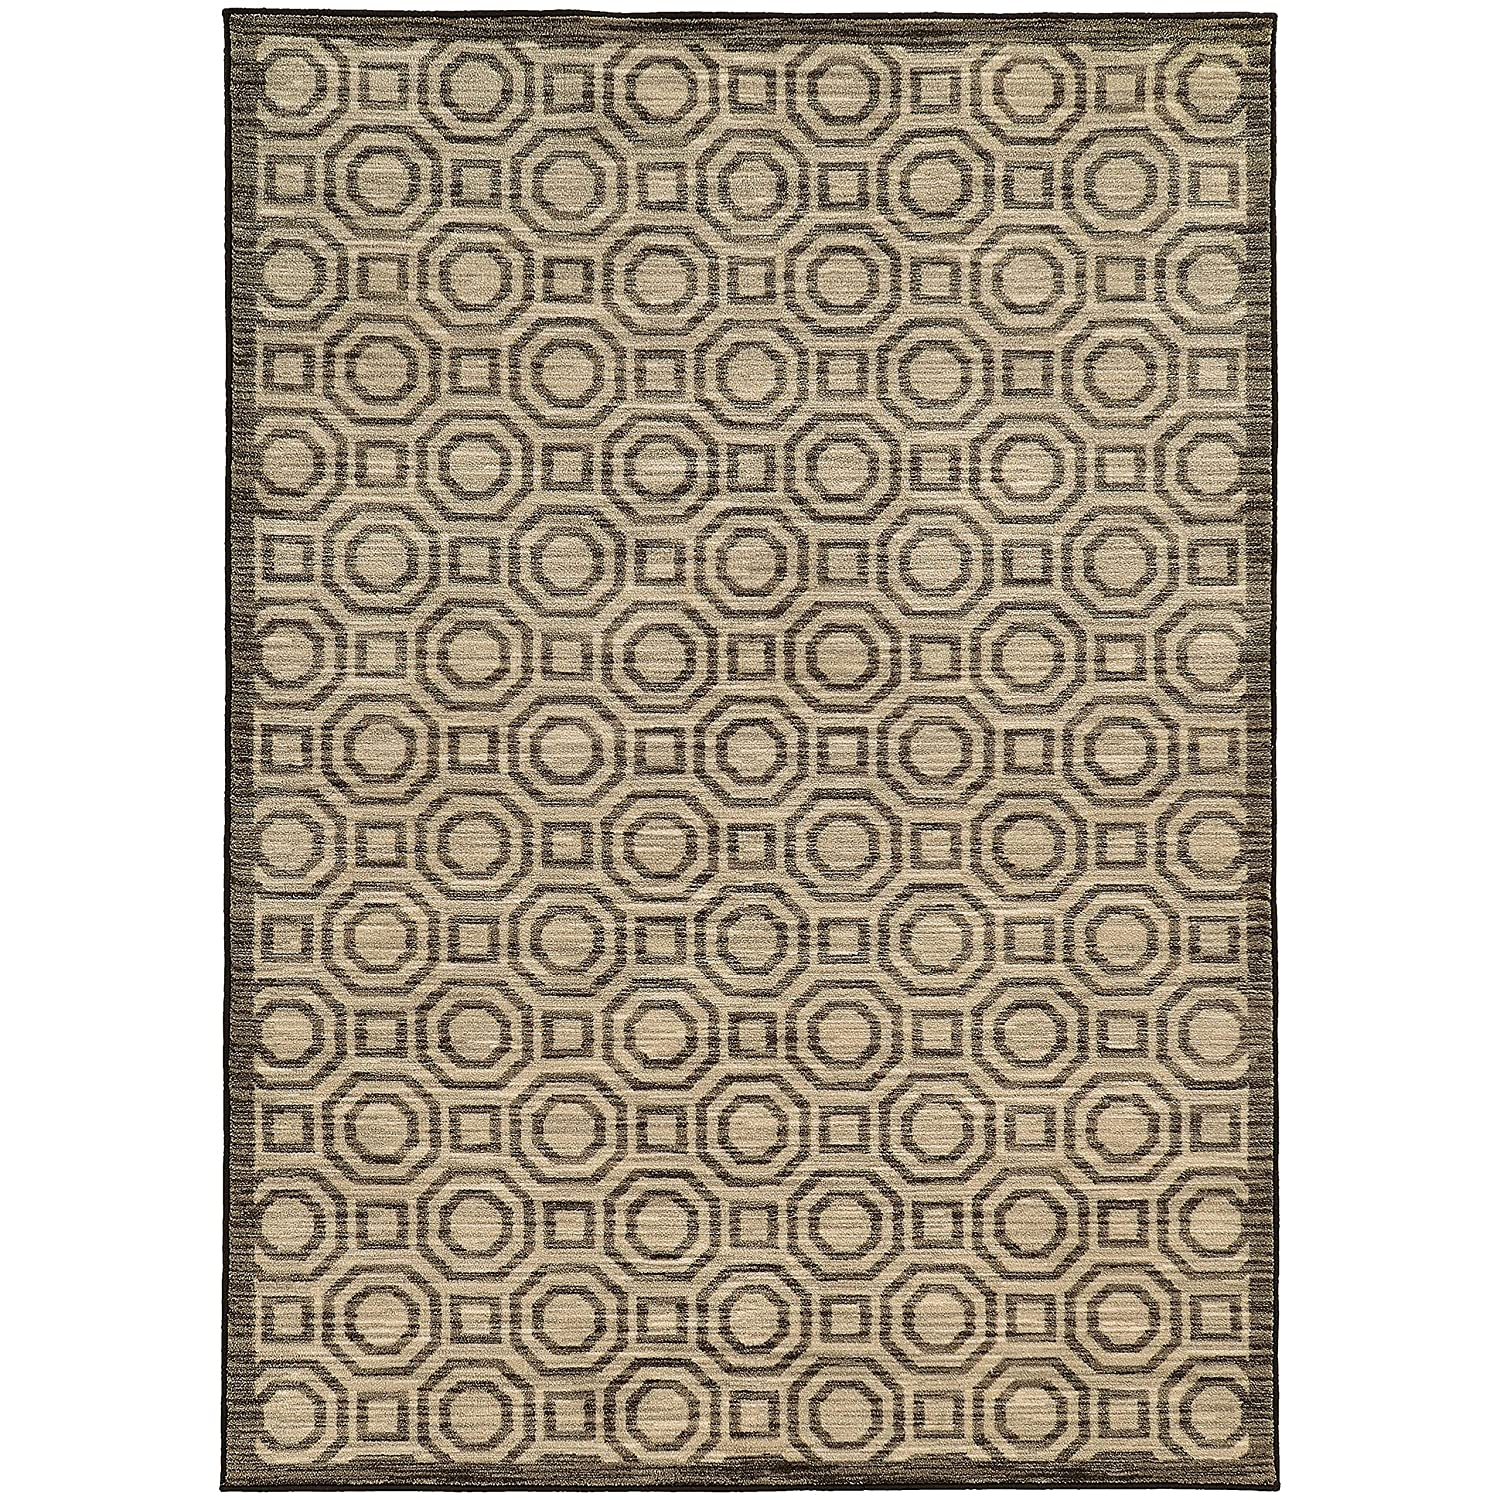 Christopher Knight Home CK-82264 Harmony Border Geometric Indoor Area Rug 7ft 10in X 10ft 10in Charcoal,Grey